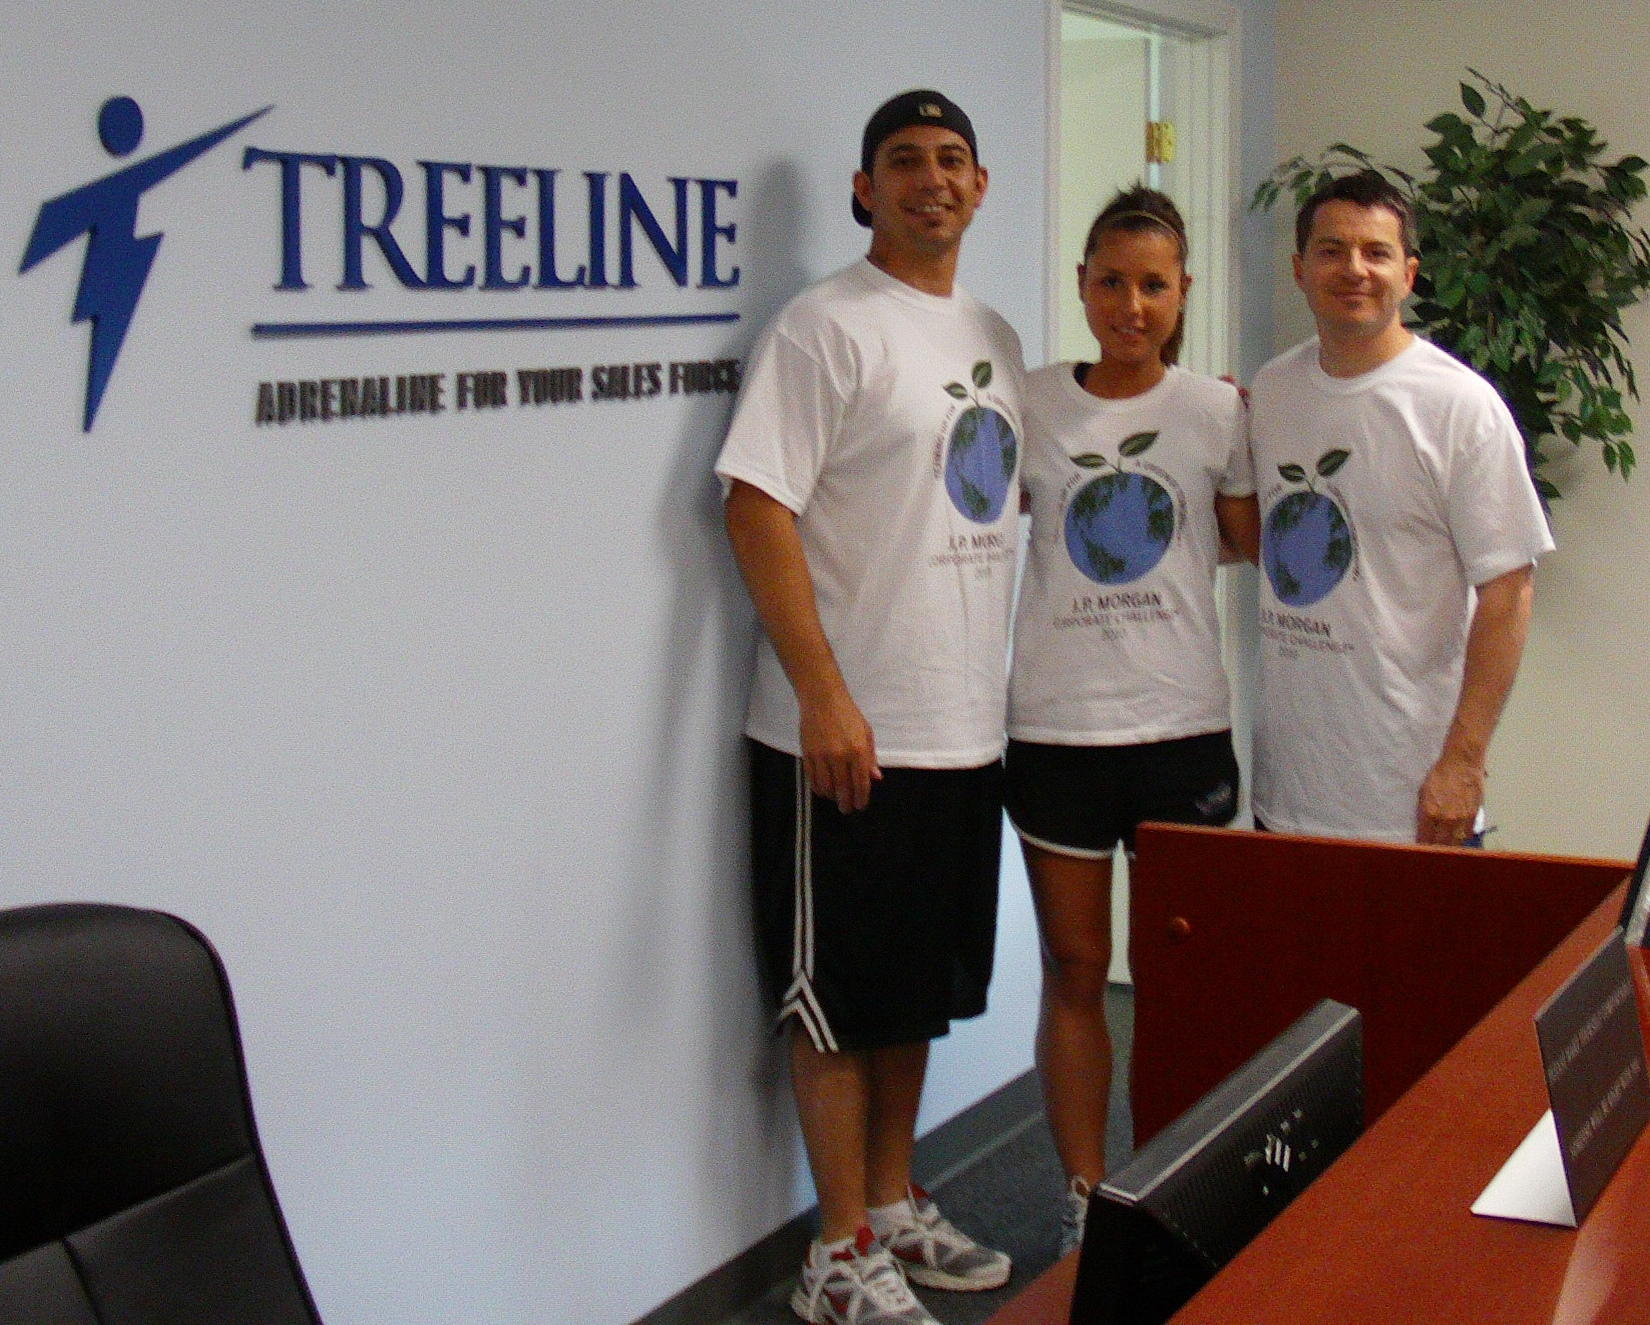 Treeline Inc named as a member of the Dana Farber Leadership council